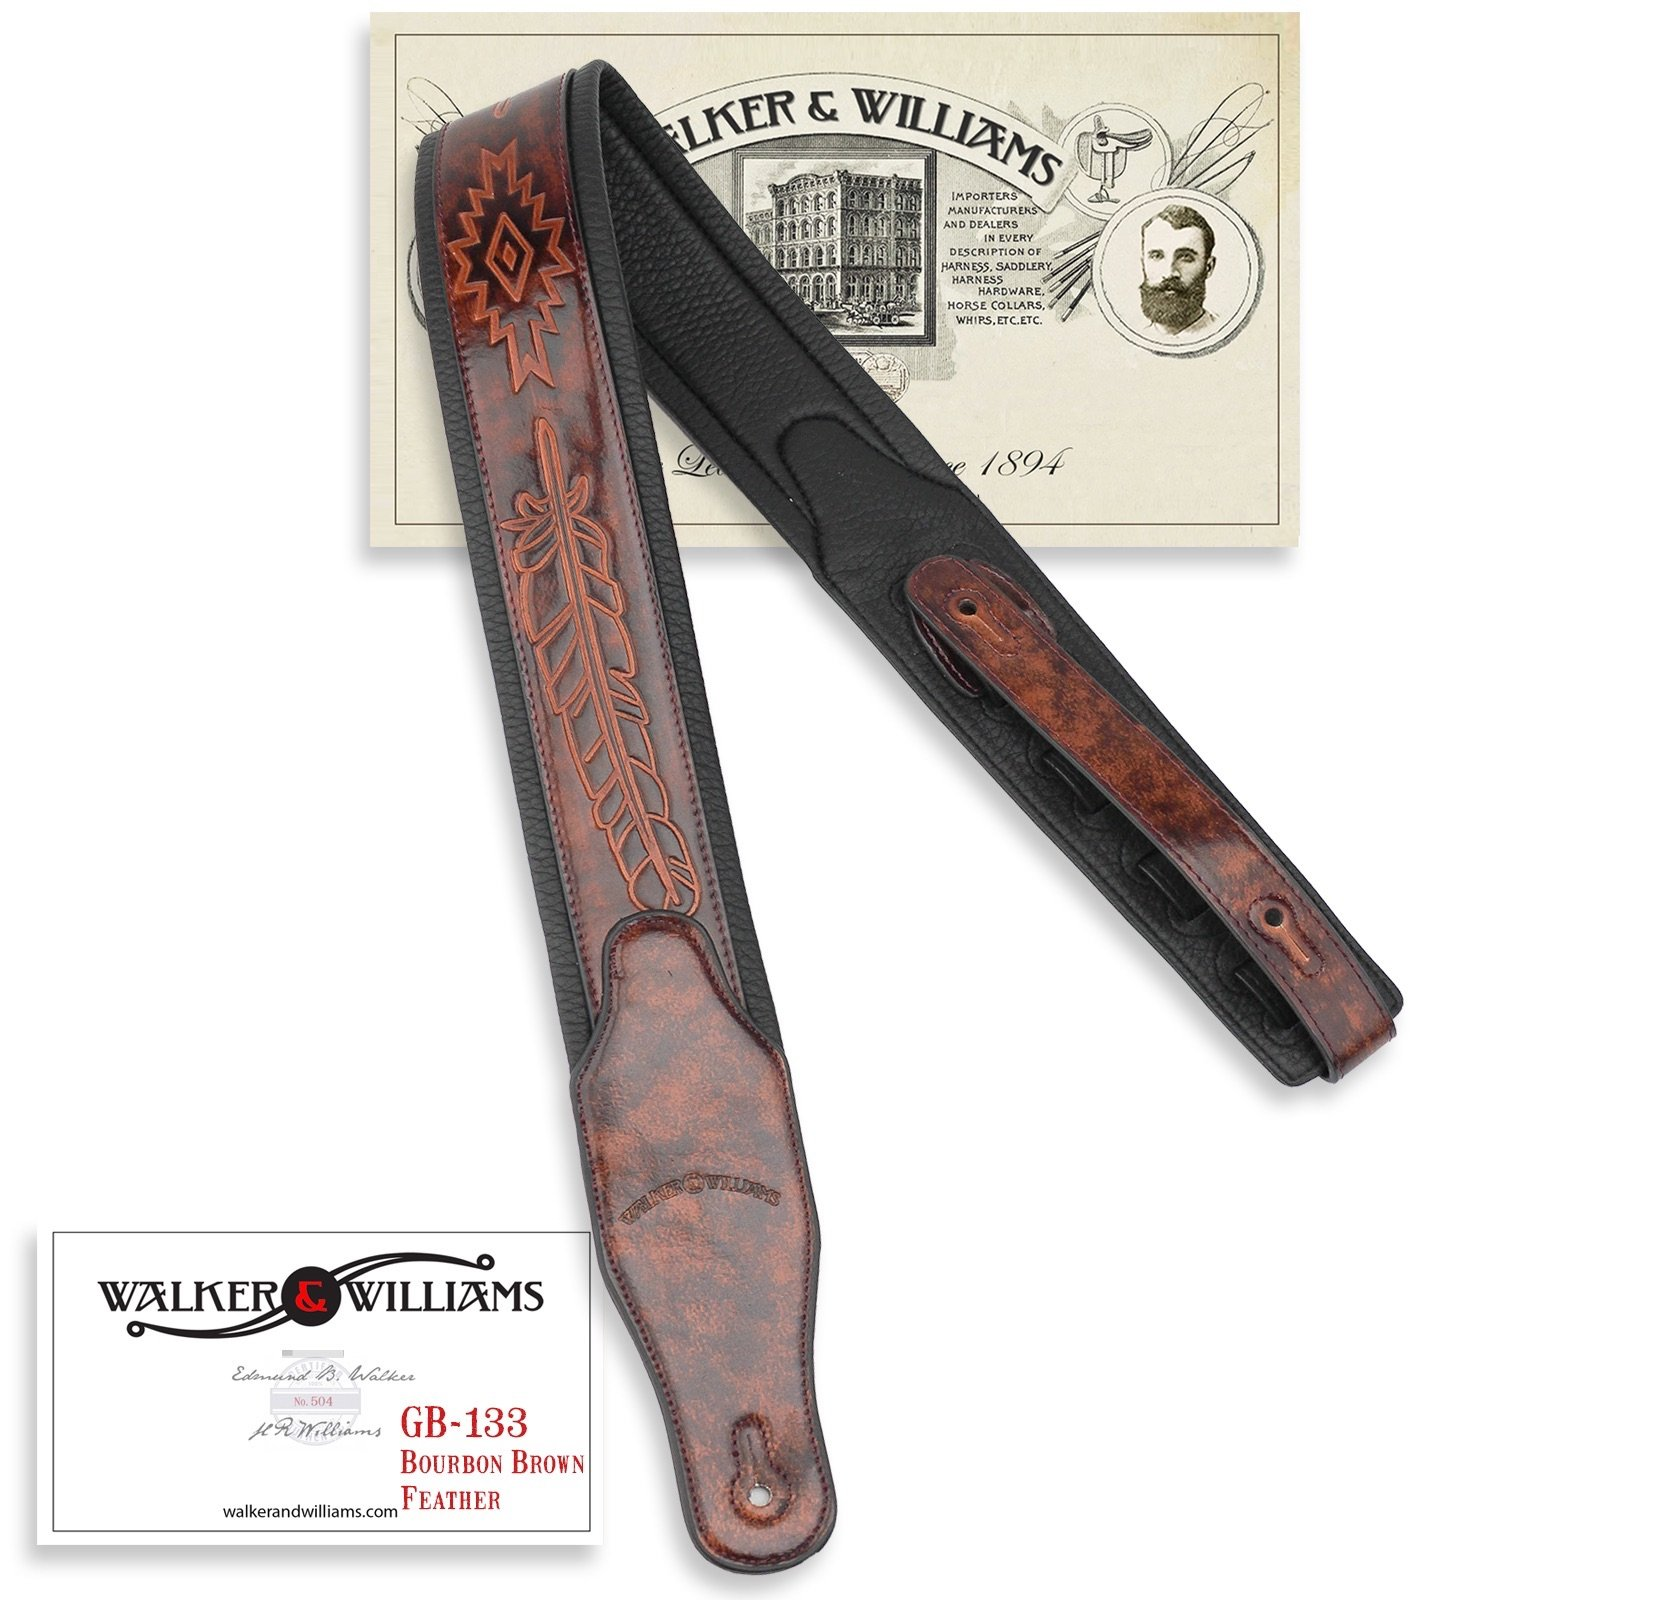 Walker & Williams GB-133 Chestnut Brown Native American Feather Padded Guitar Strap by Walker & Williams